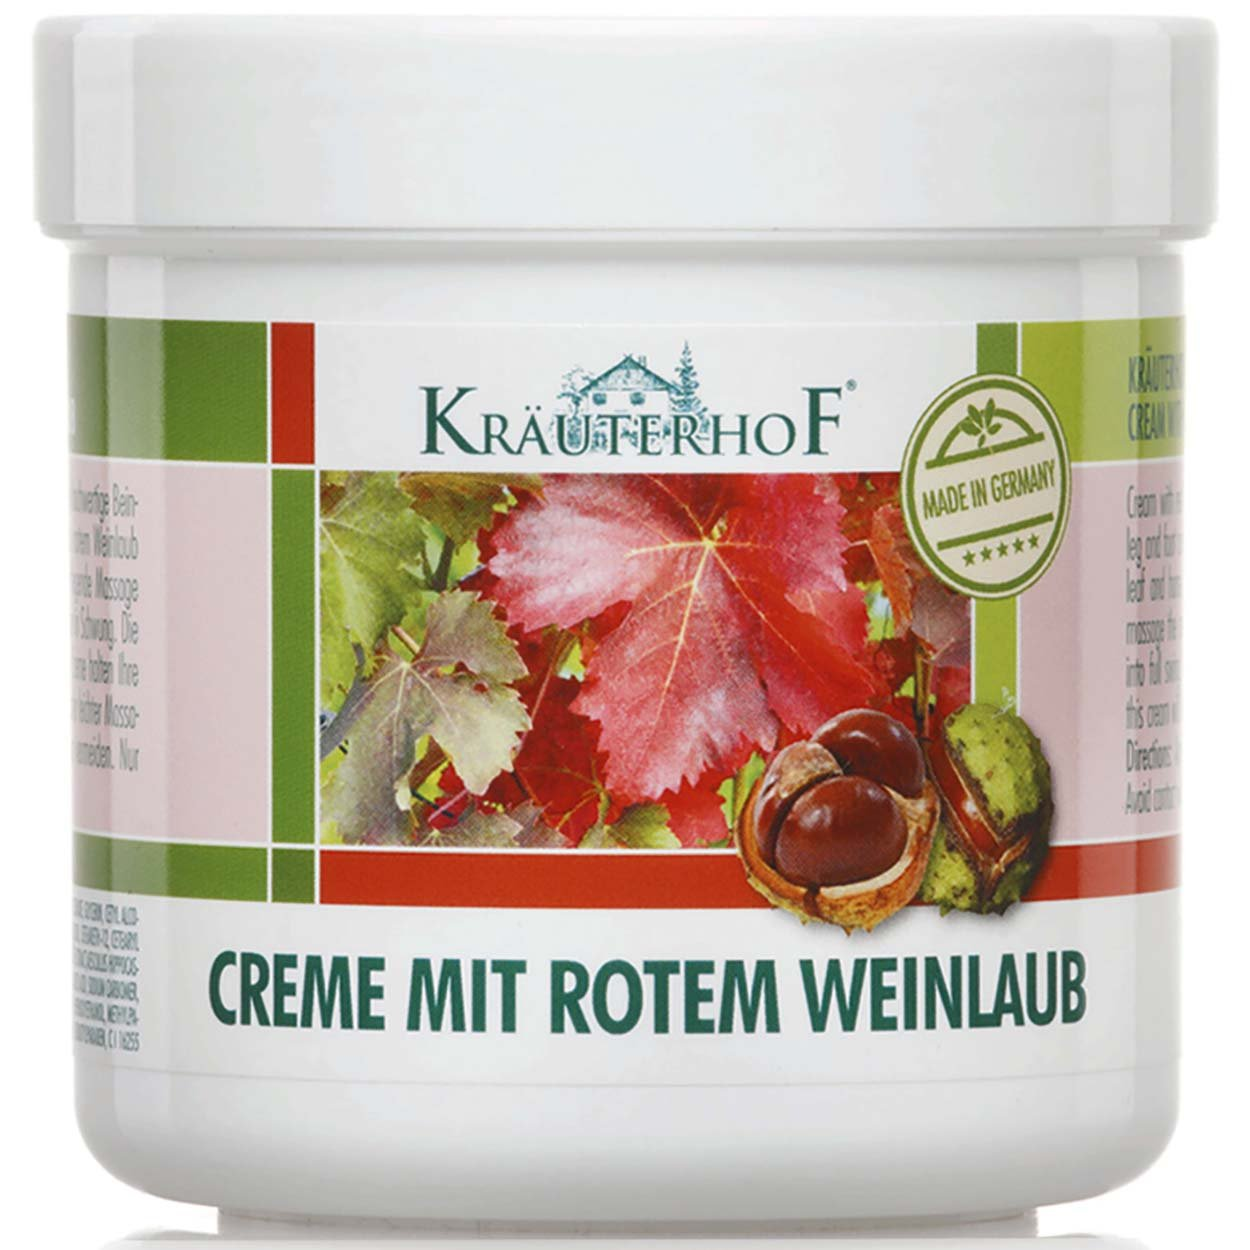 Horse Chestnut With Red Vine Leaves for Varicose Veins, Aching Legs - Large - 250ml